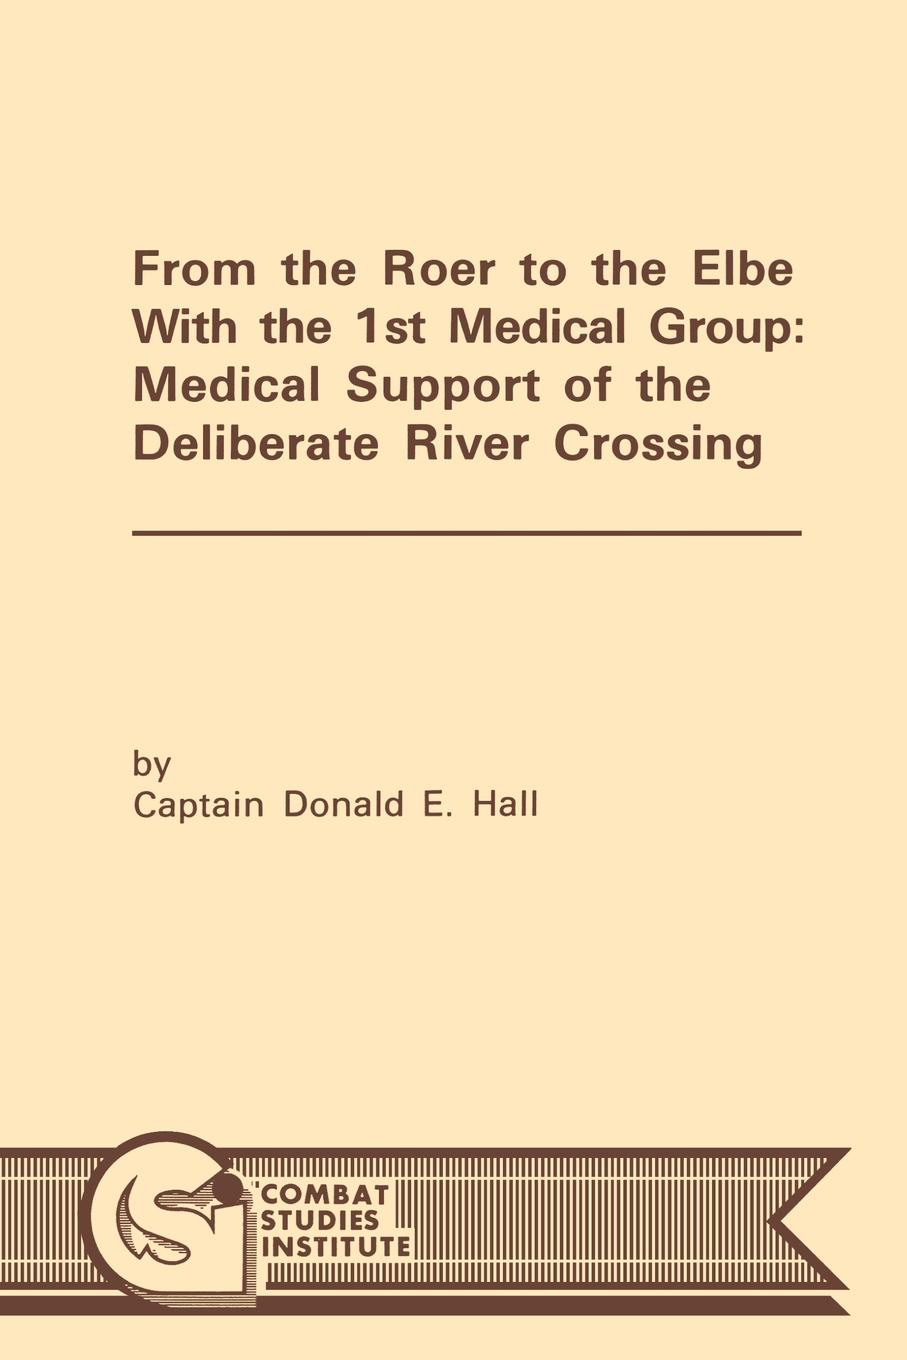 Donald E. Hall, Combat Studies Institute From the Roer to the Elbe with the 1st Medical Group. Medical Support of the Deliberate River Crossing